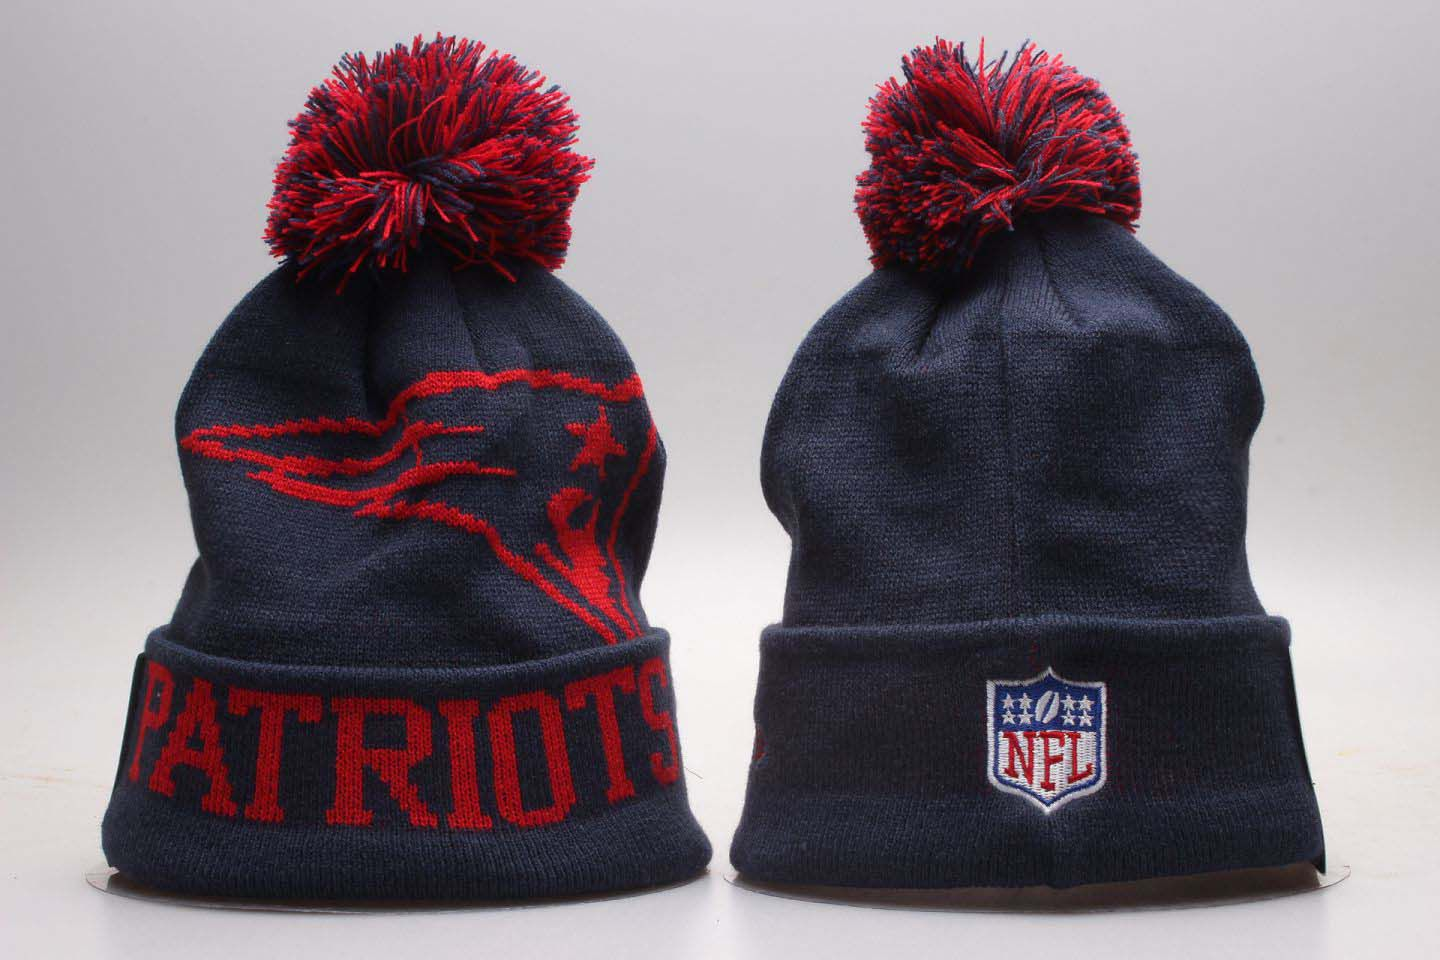 NFL New England Patriots Beanie hot hat9